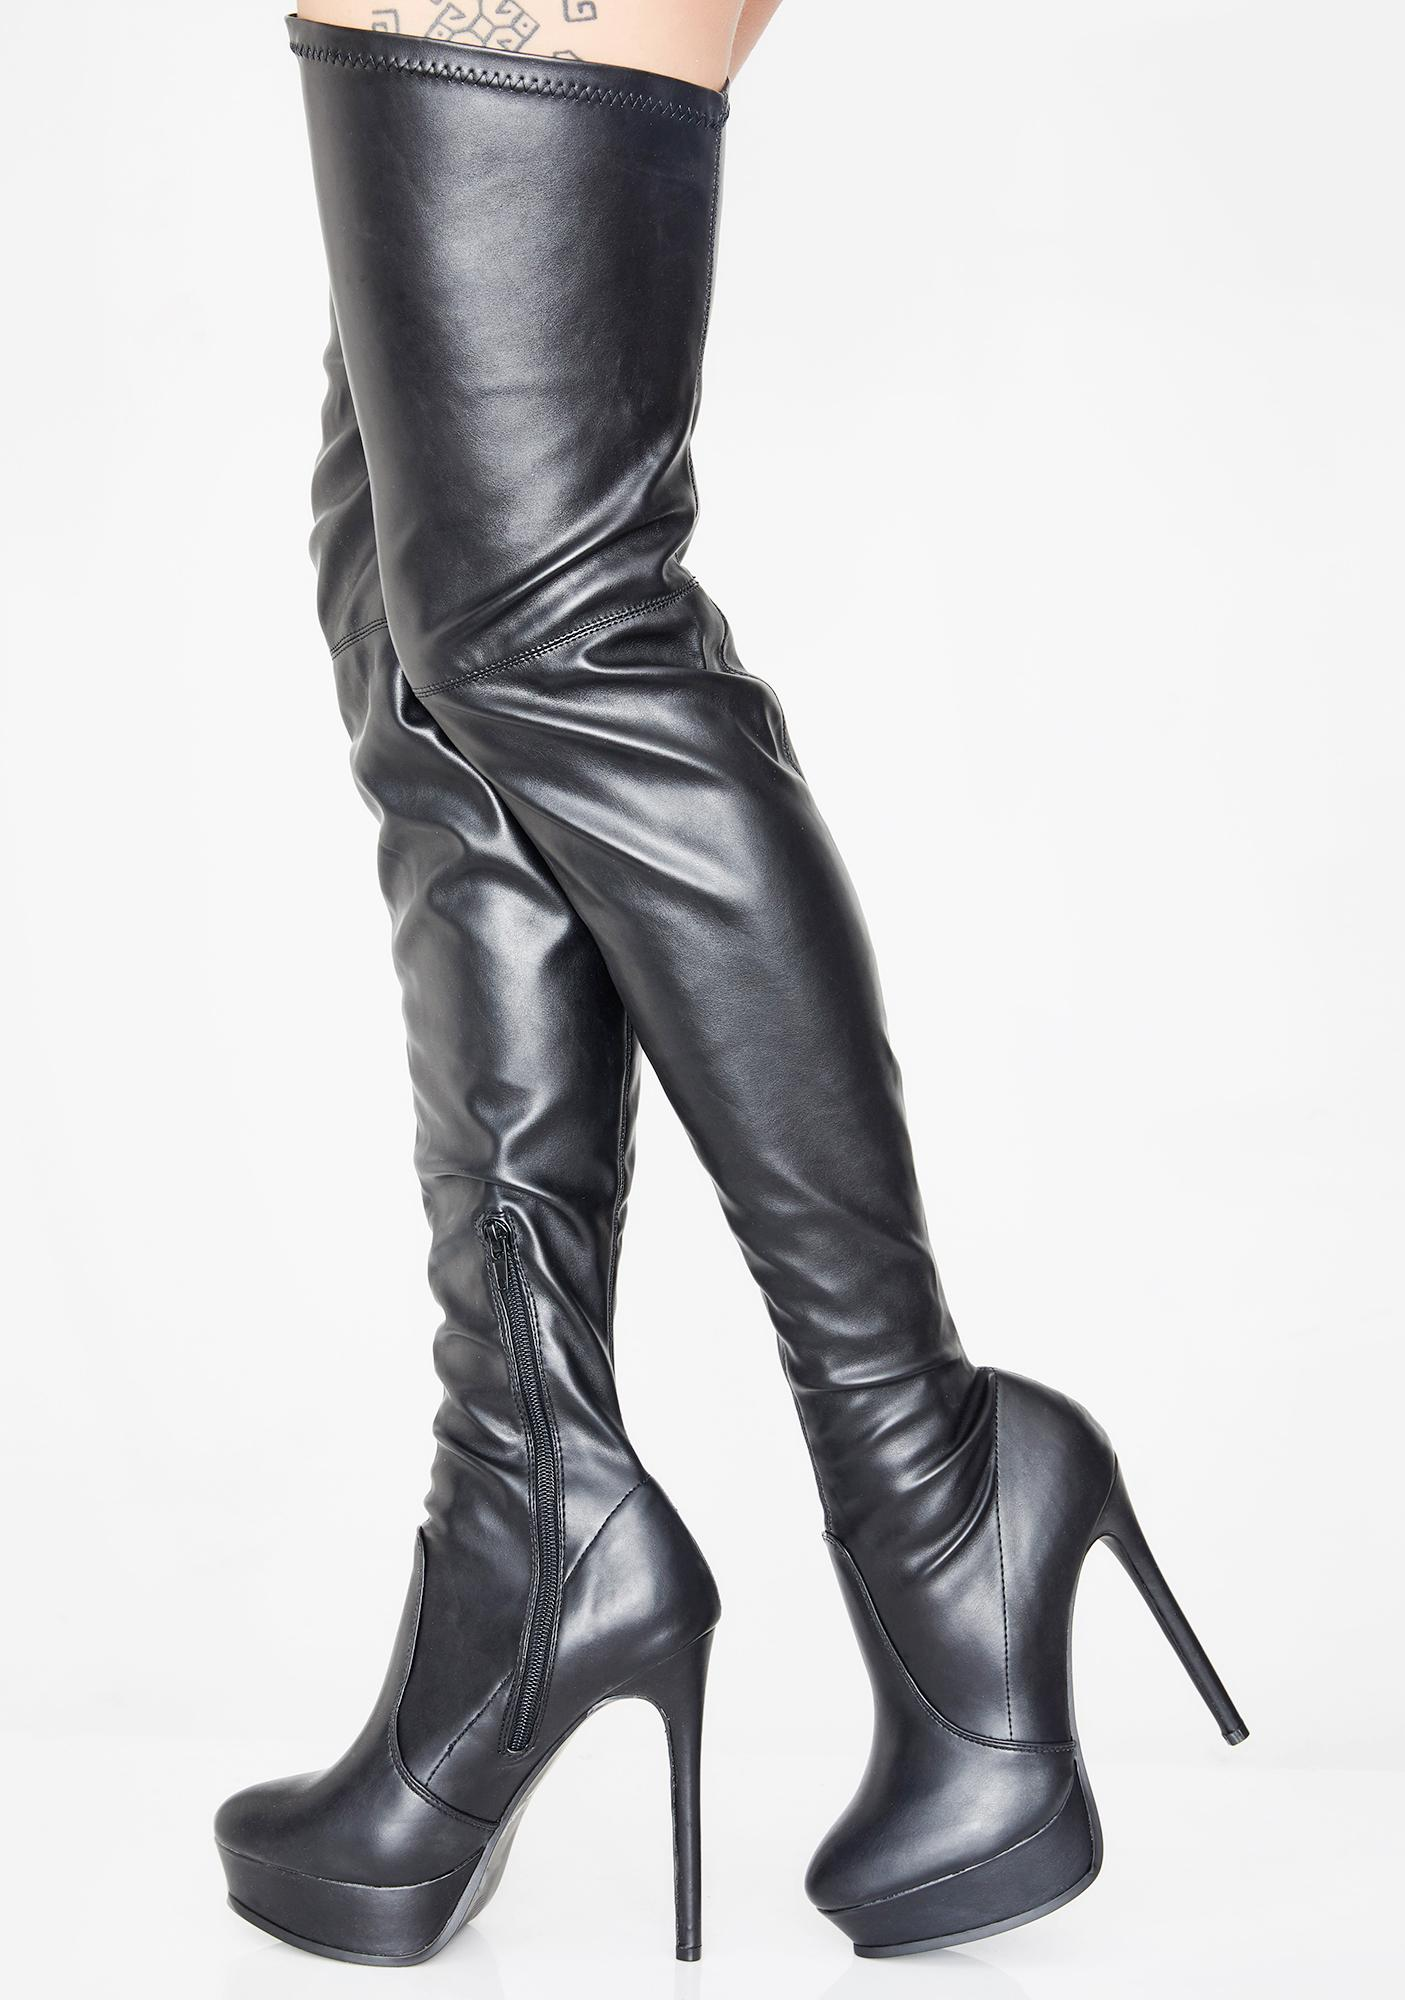 0bfbf25b119 In Lust Thigh High Boots